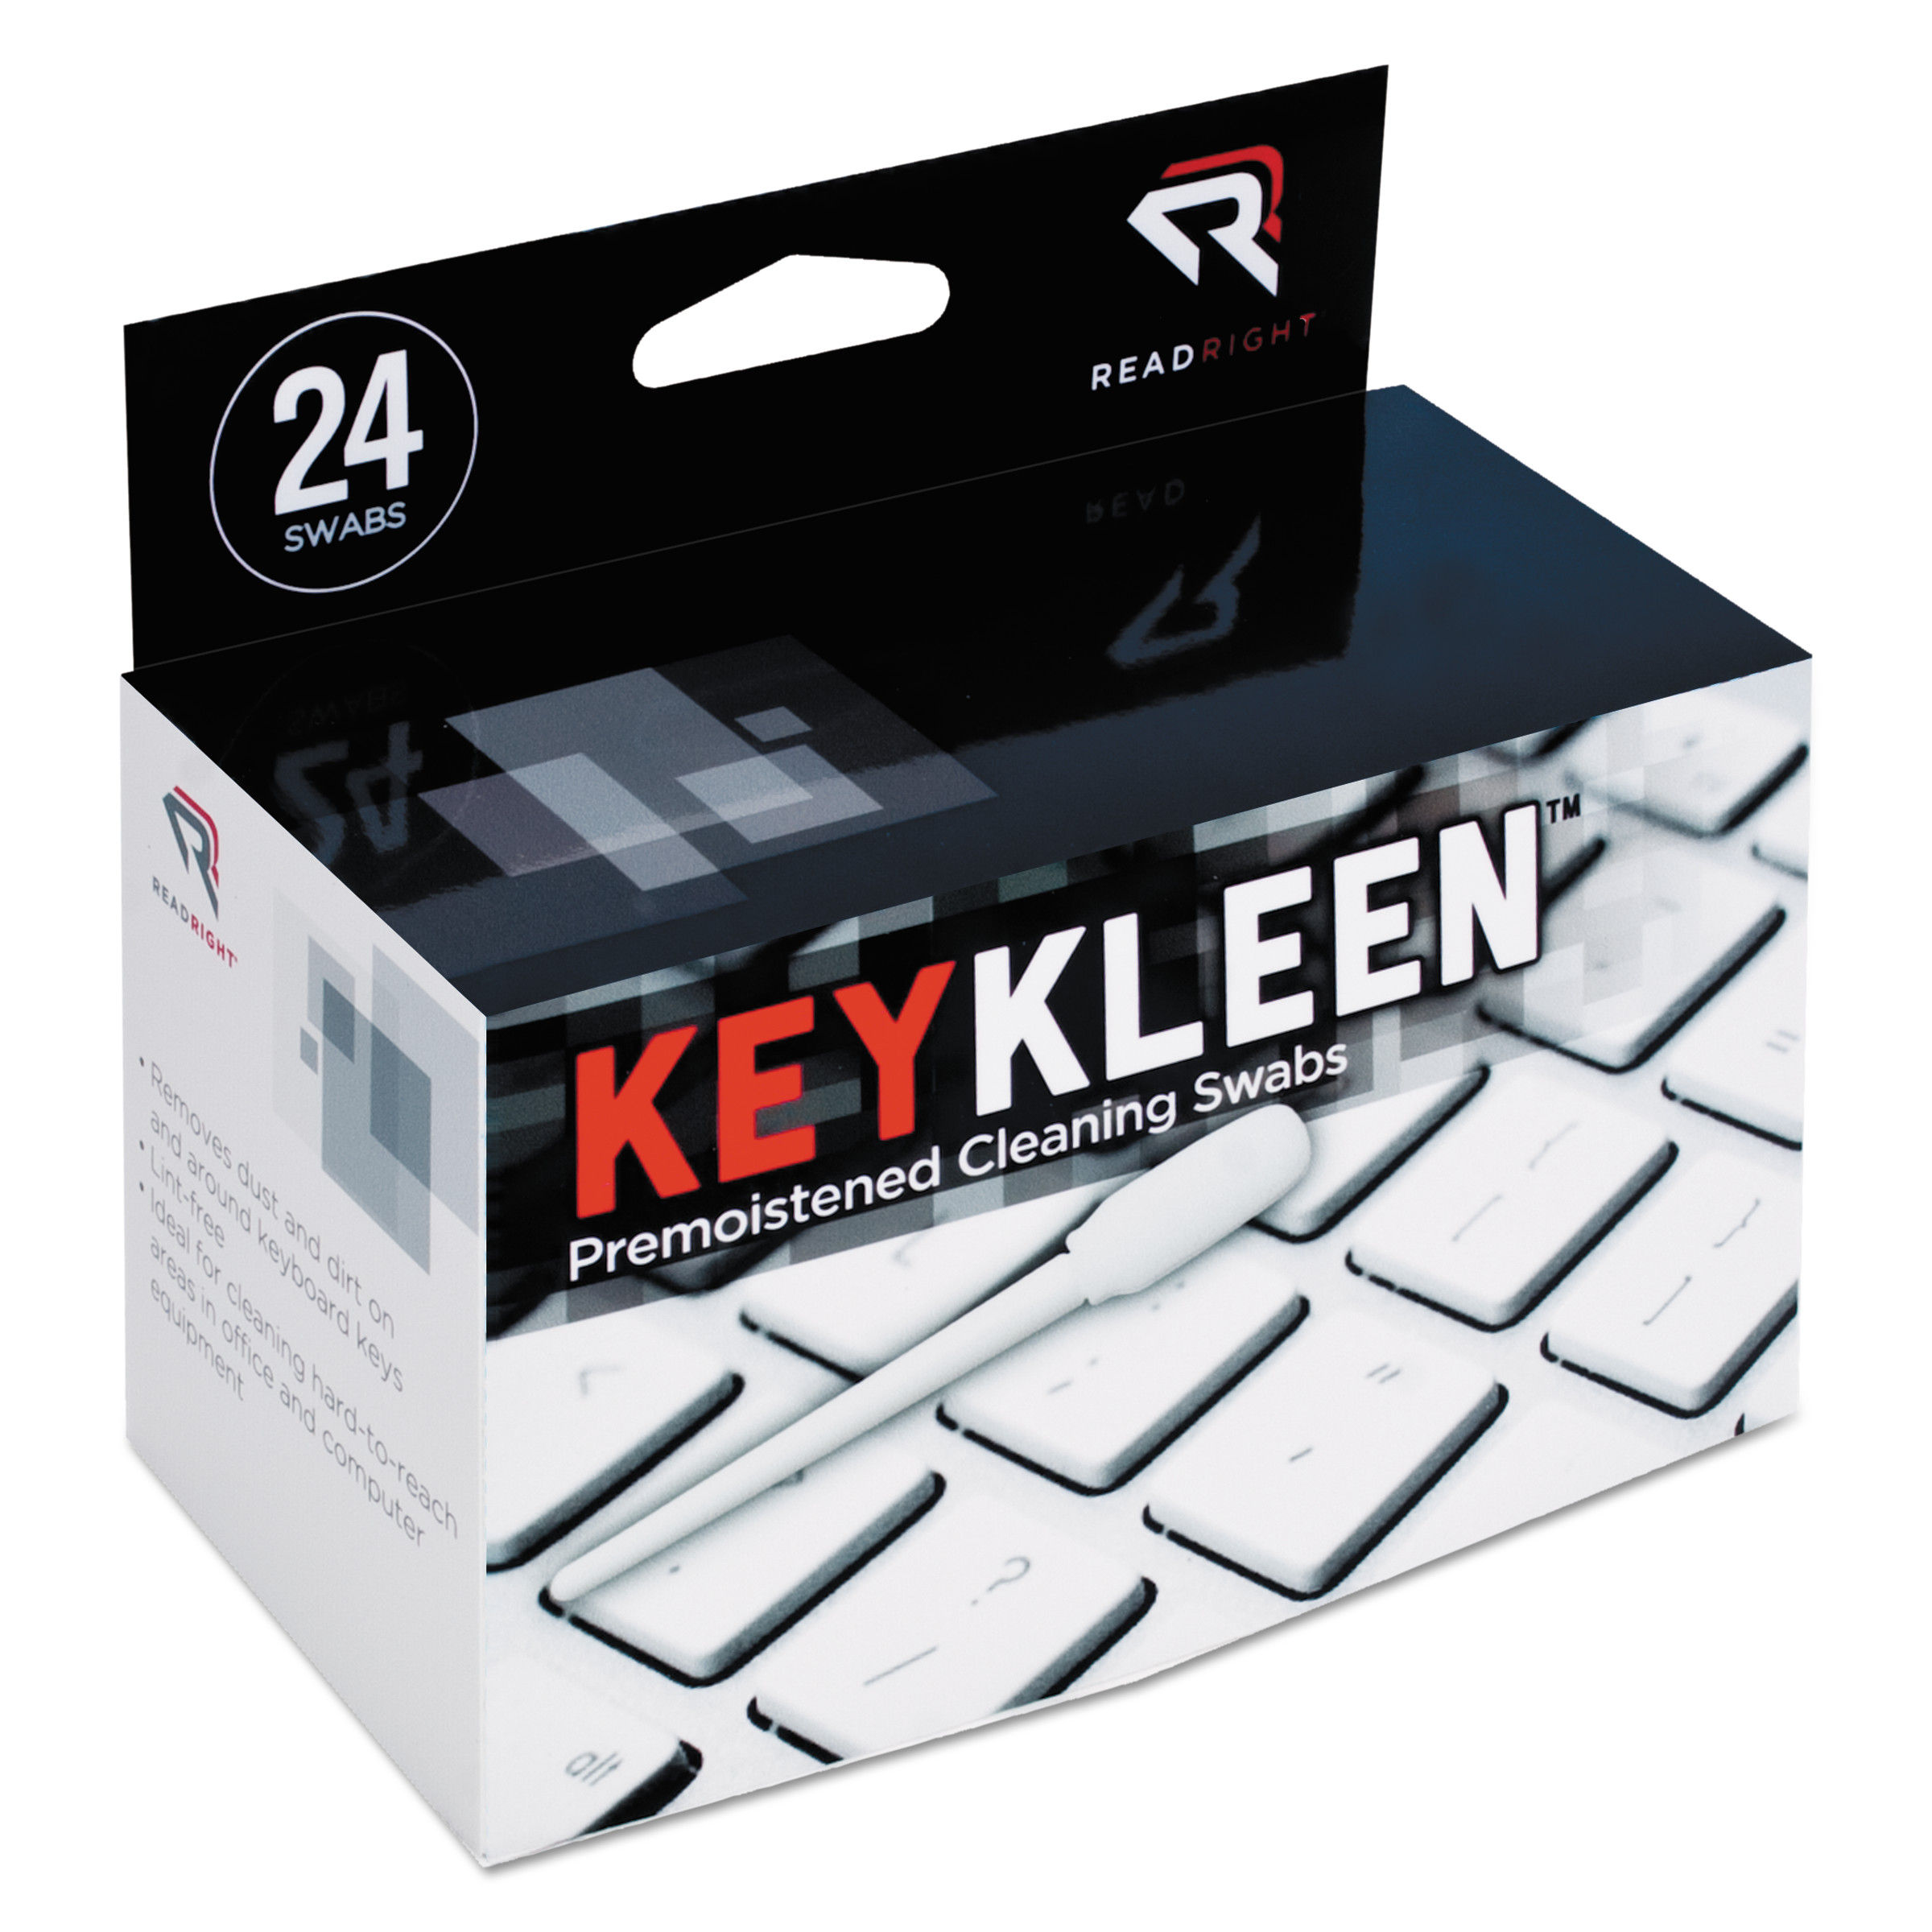 Read Right KeyKleen Premoistened Cleaning Swabs, 24/Box